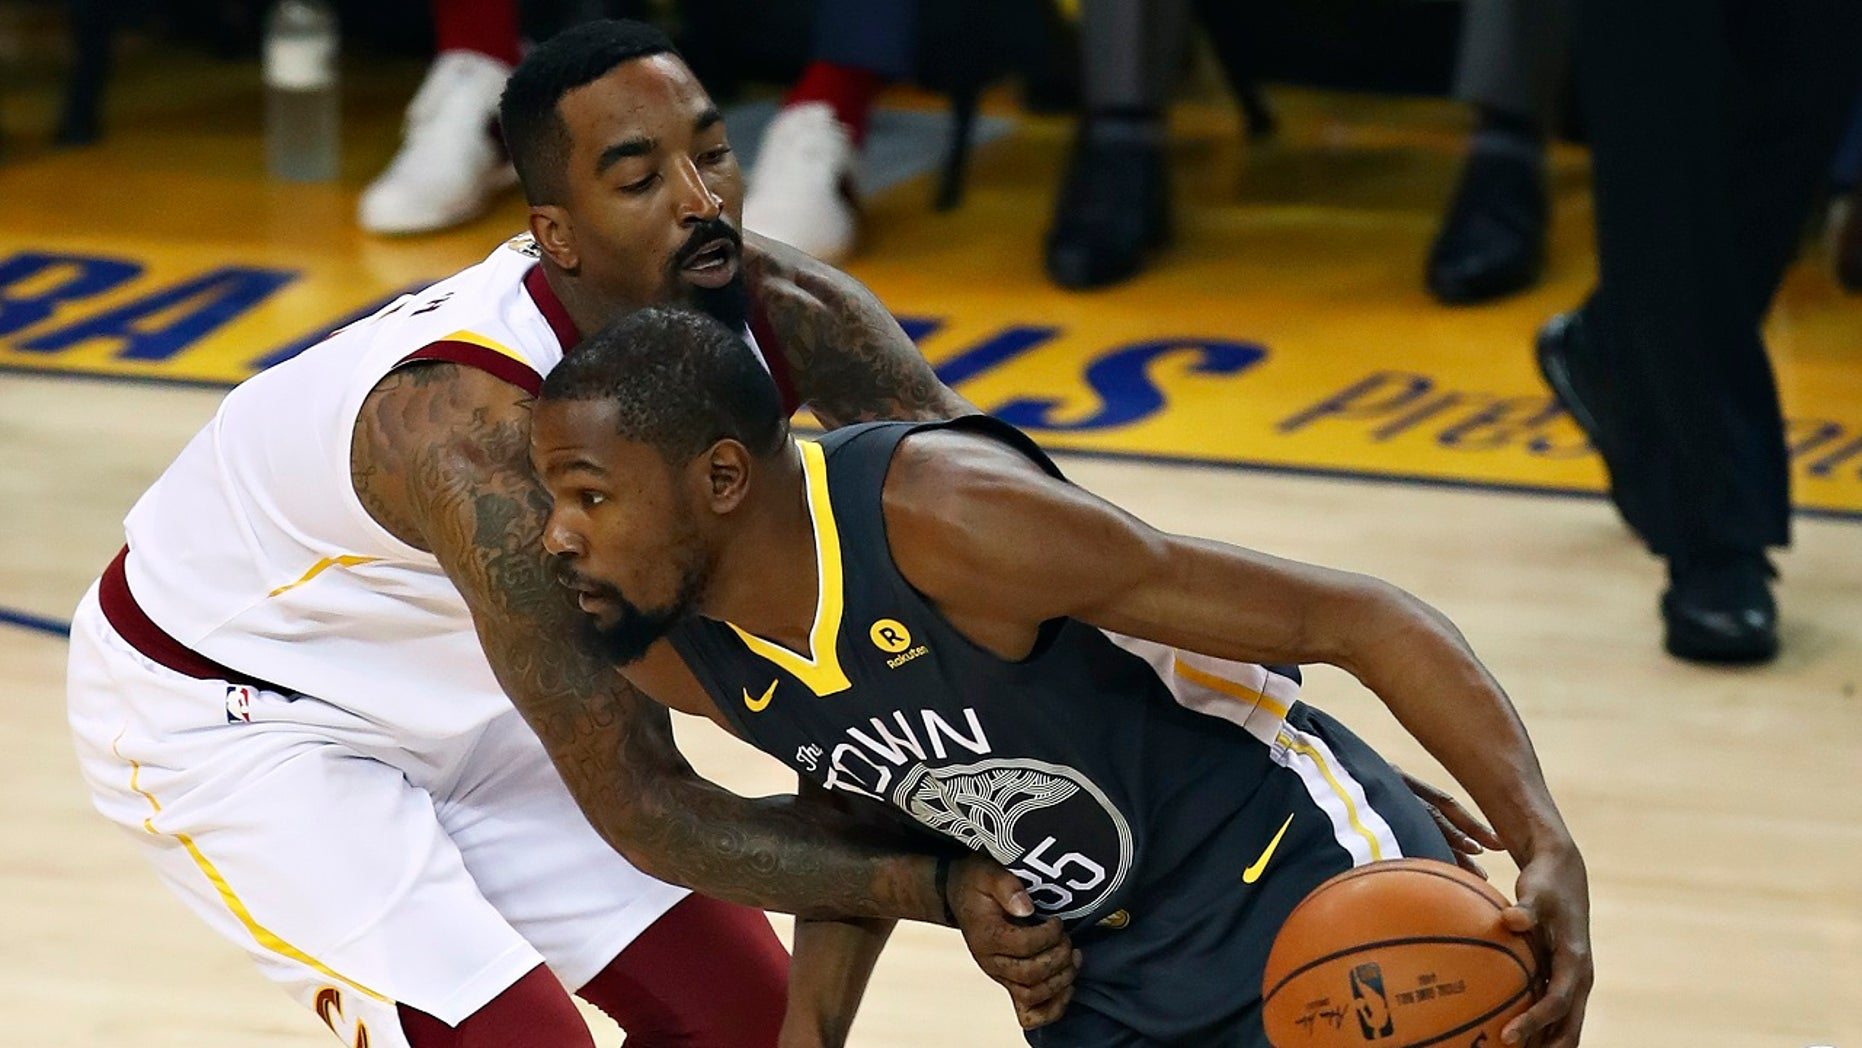 J.R. Smith received a standing ovation at from Golden State Warriors fans during Game 2 of the NBA Finals Sunday night at Oracle Arena.